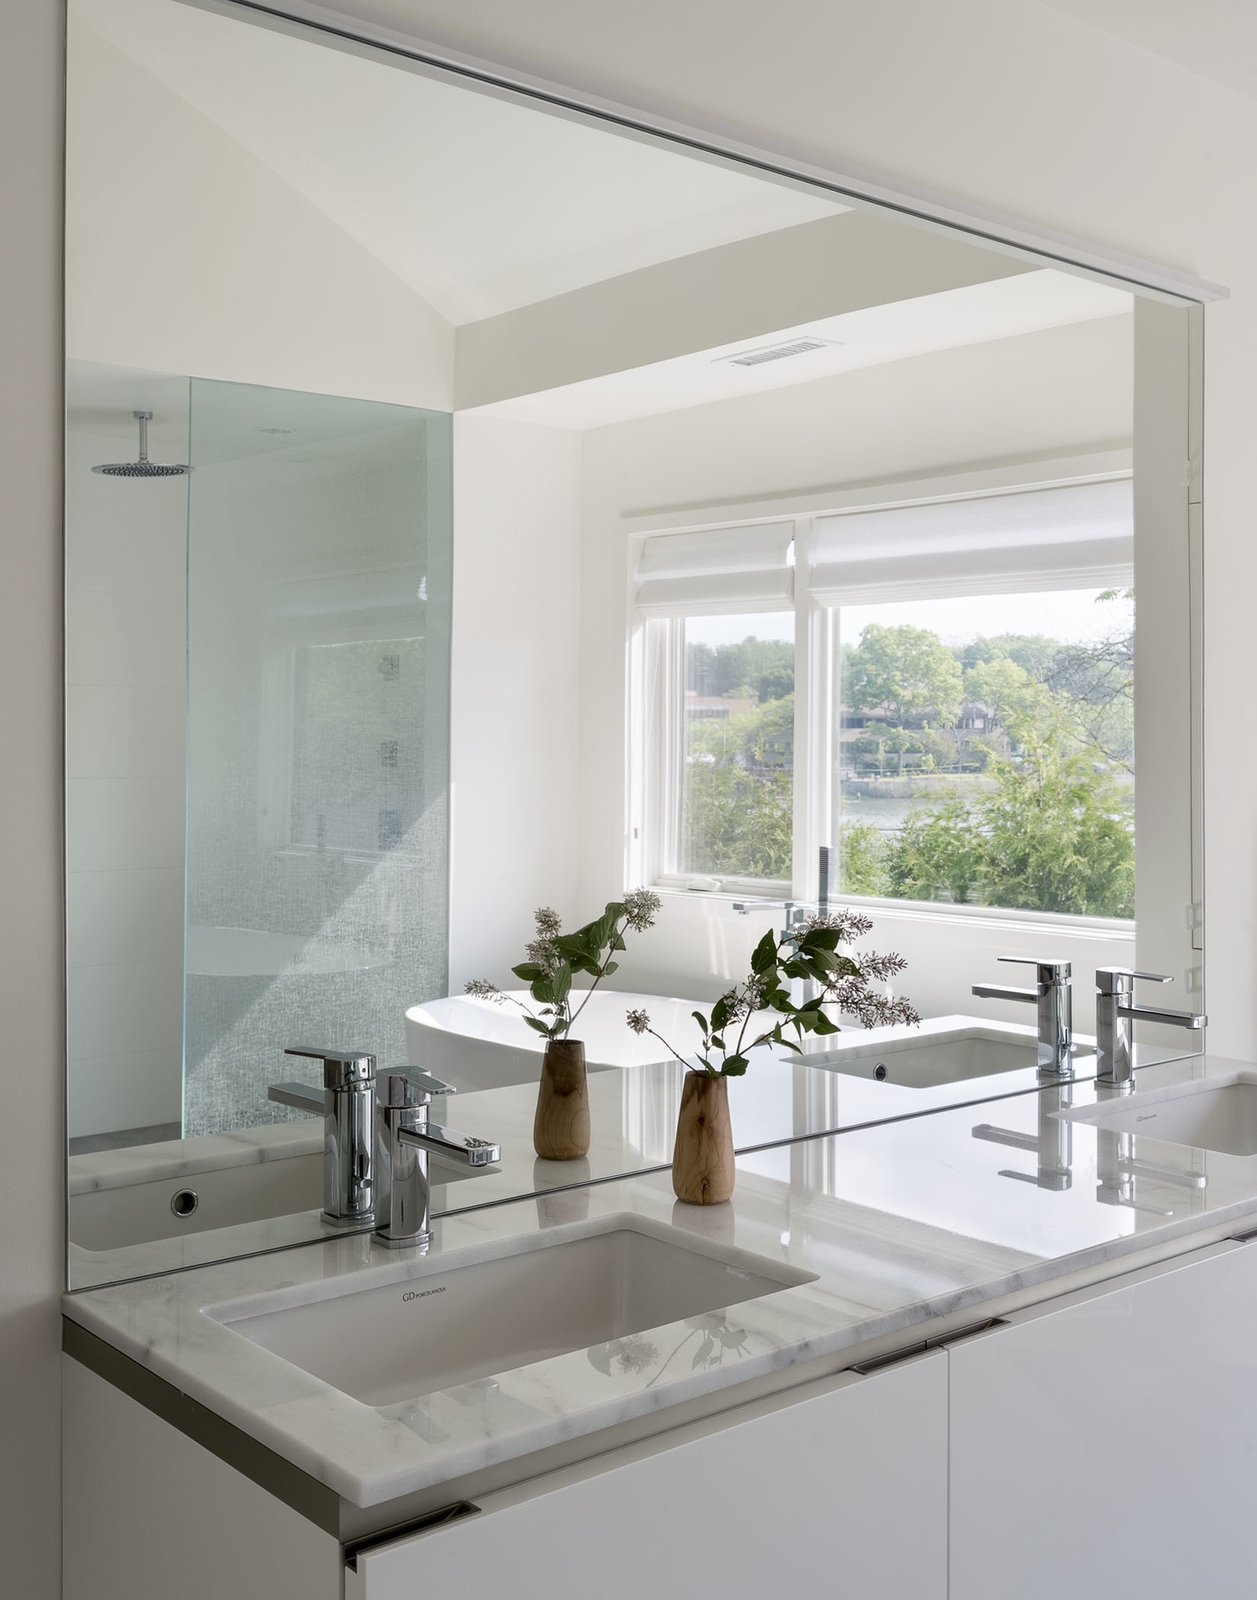 Bath Room, Engineered Quartz Counter, Porcelain Tile Floor, Drop In Sink, Open Shower, Recessed Lighting, Freestanding Tub, Wall Lighting, One Piece Toilet, and Porcelain Tile Wall Bathroom Detail  The River House by Sellars Lathrop Architects